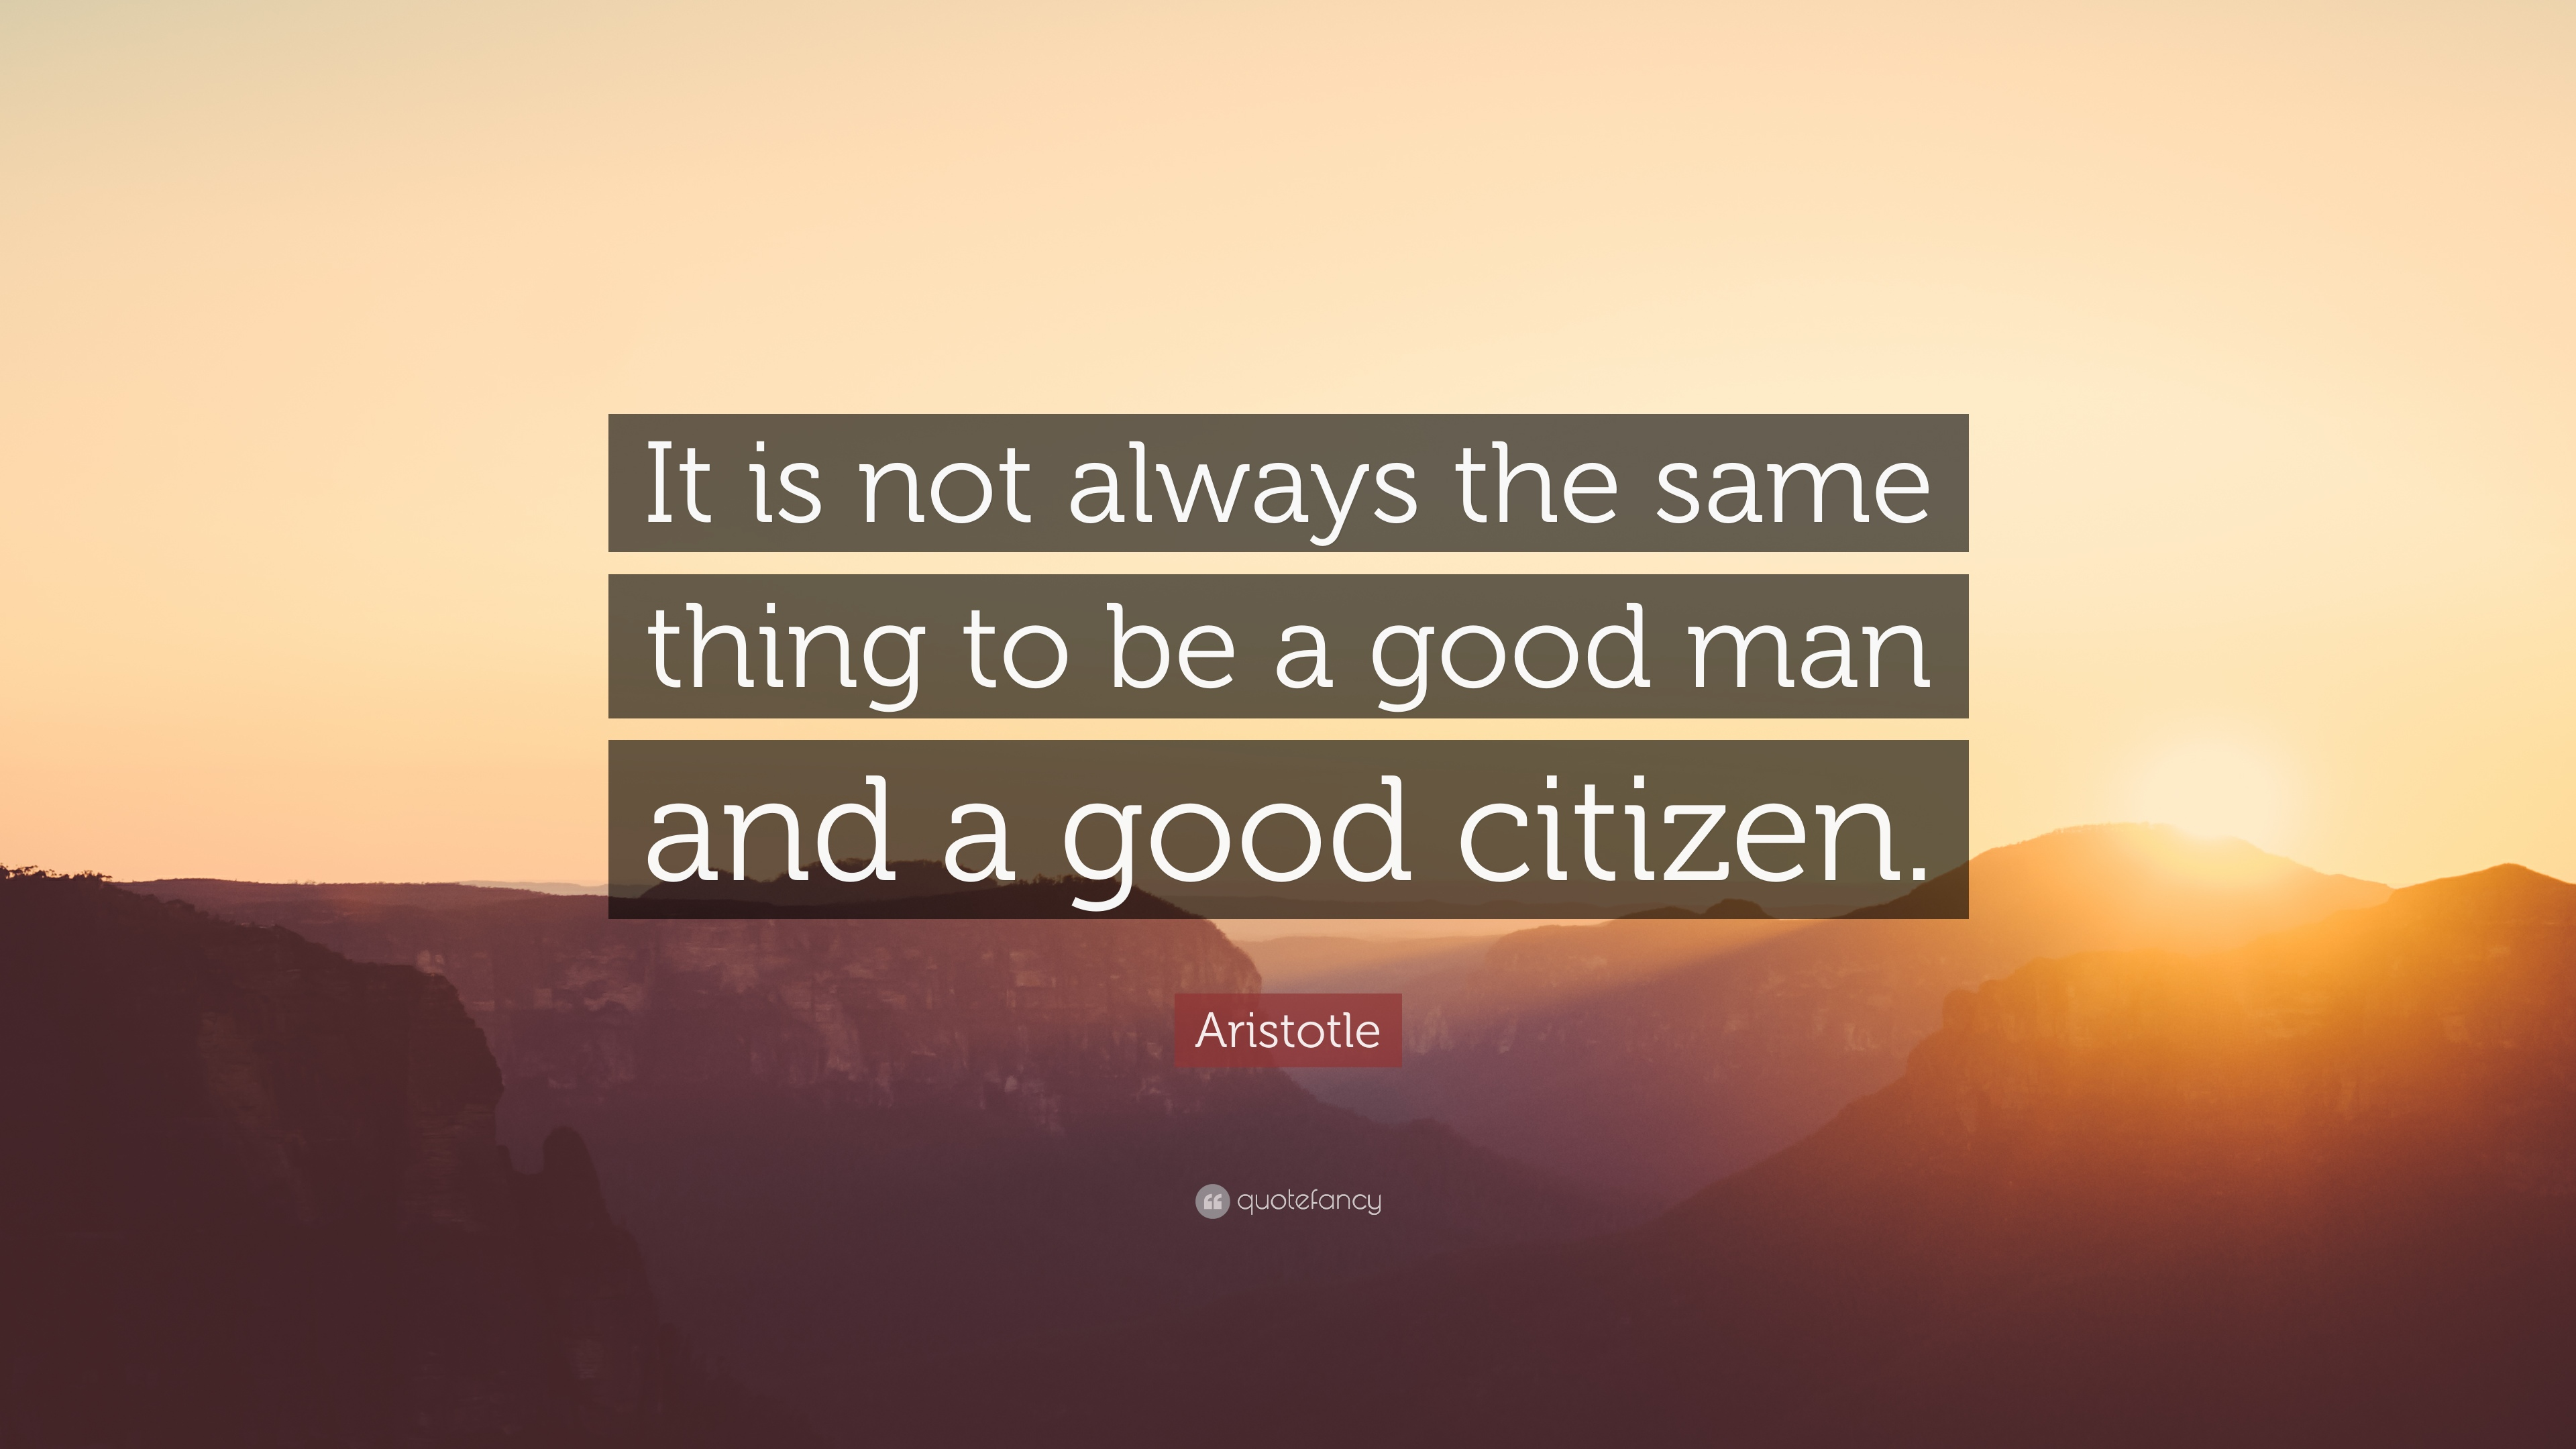 an analysis of aristotles views on being a good man and a good citizen